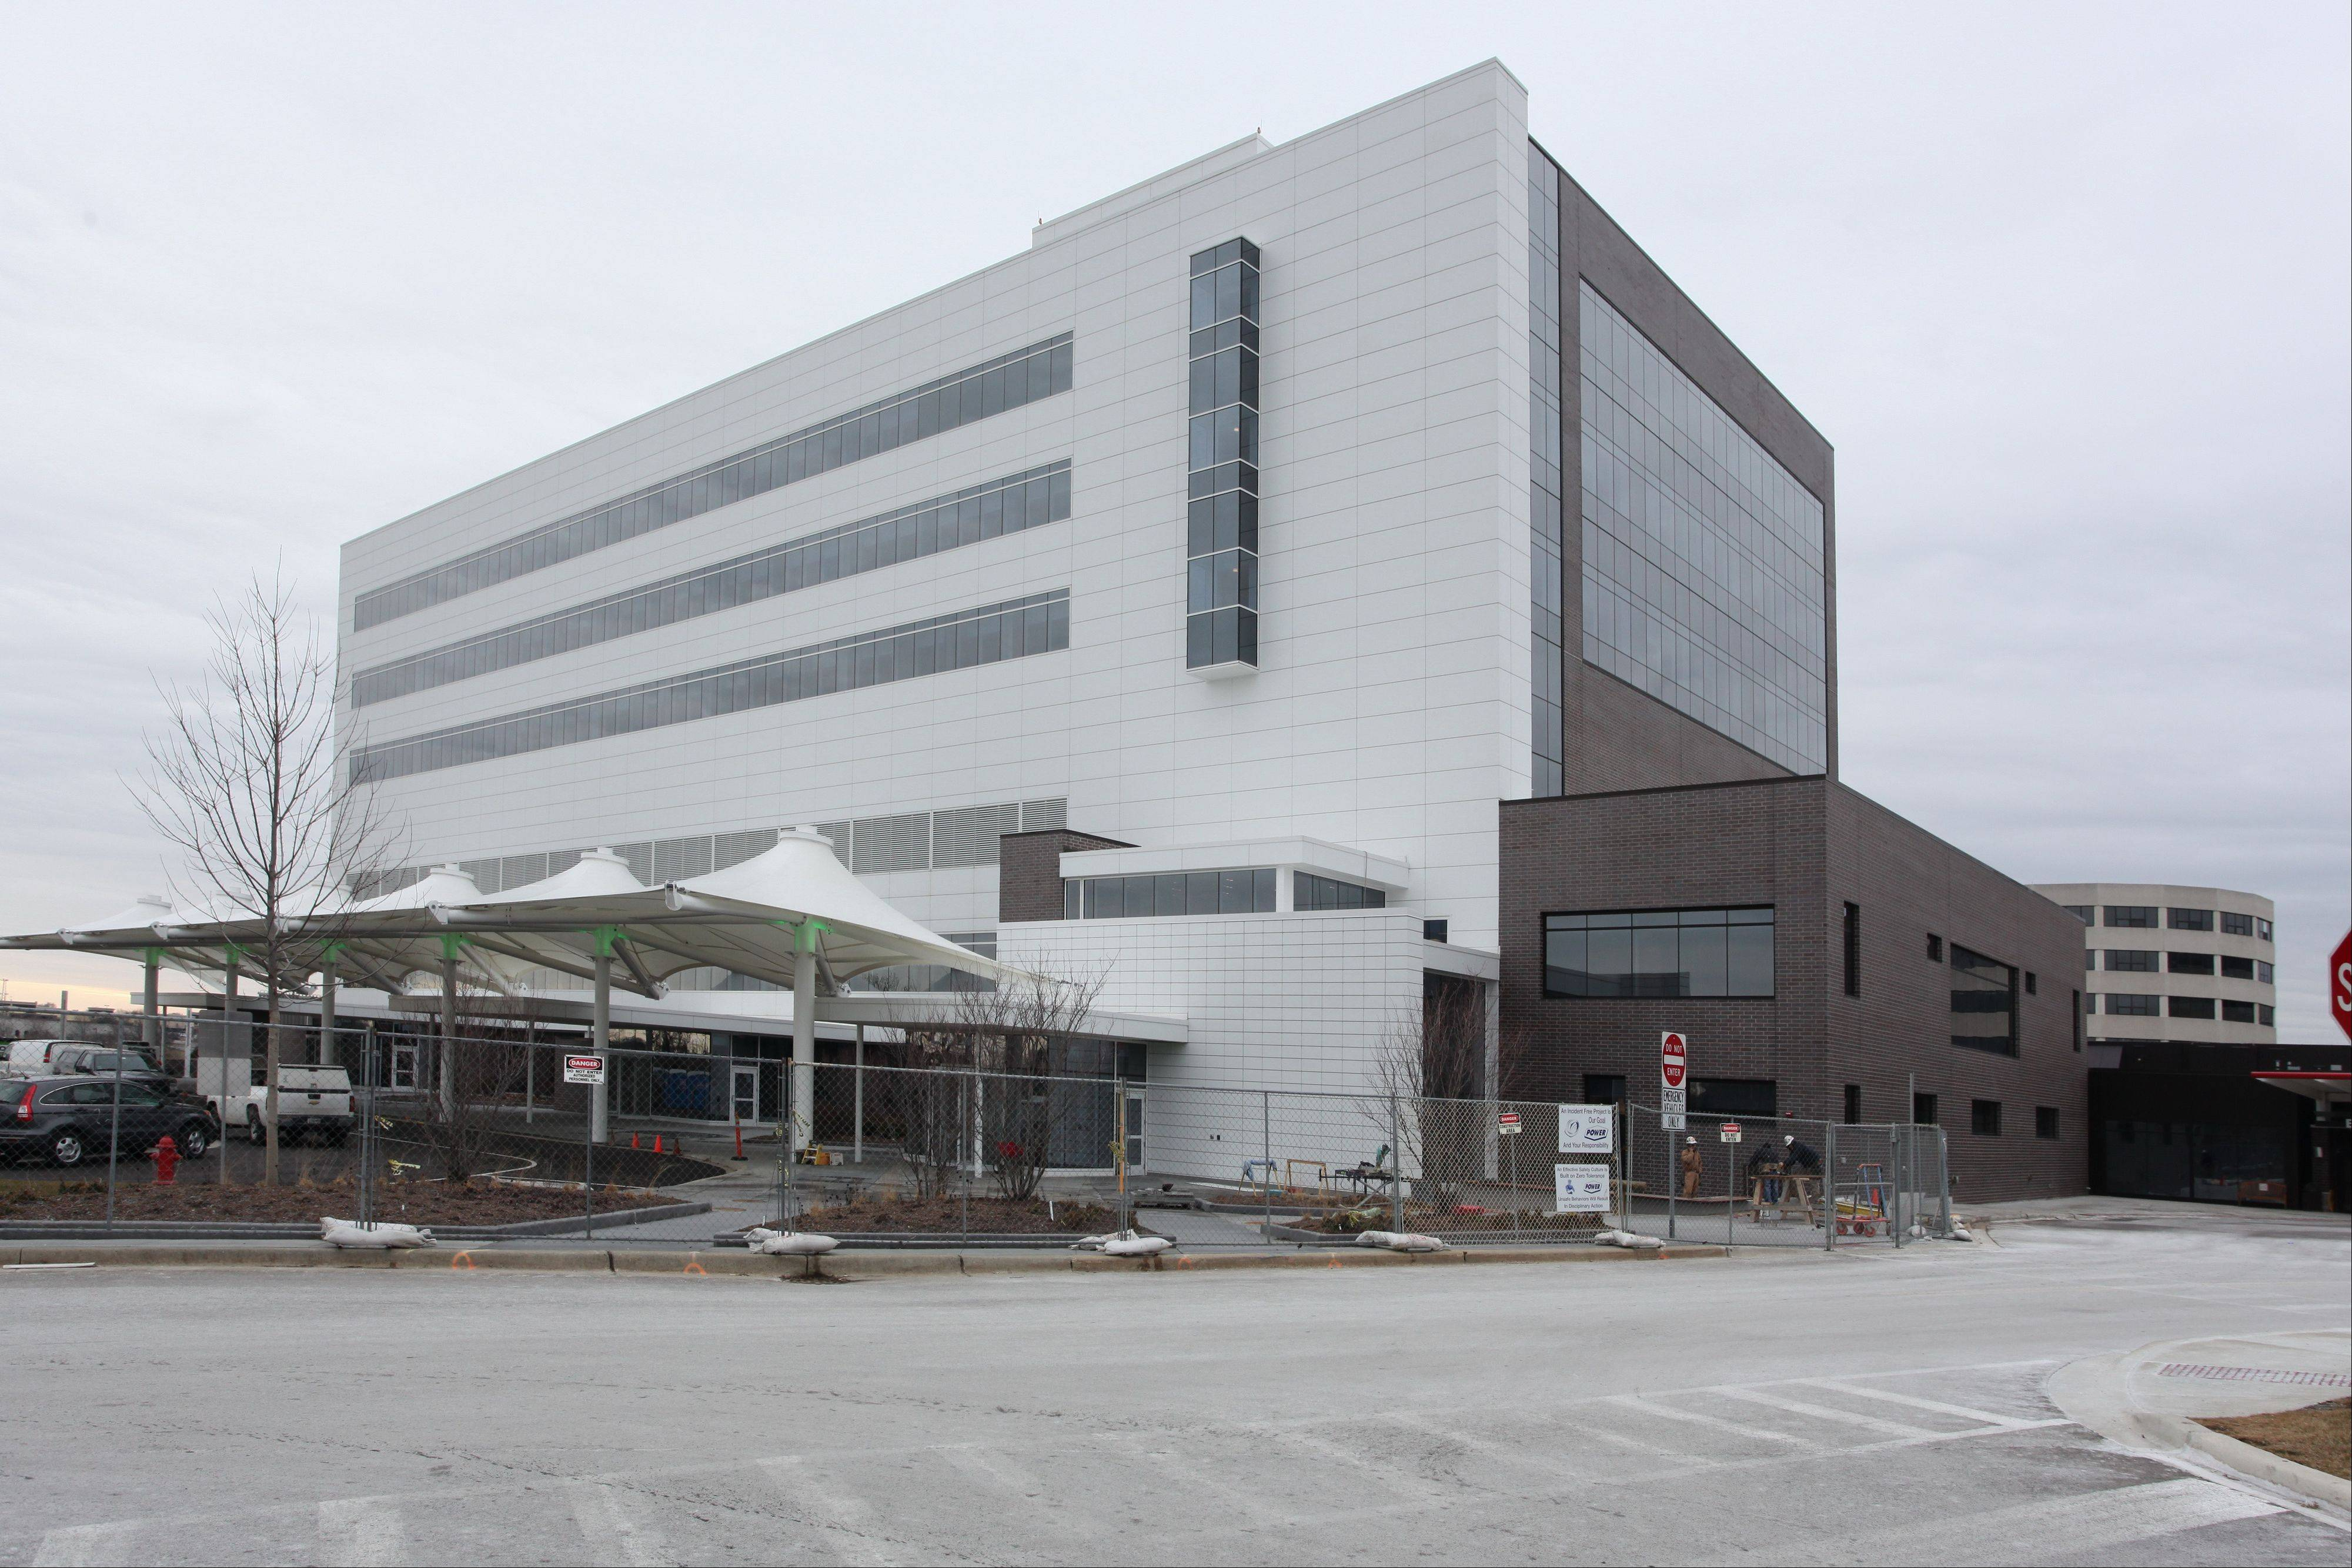 This is what the exterior of the new Alexian Brothers Women and Children's Hospital looked like last week.